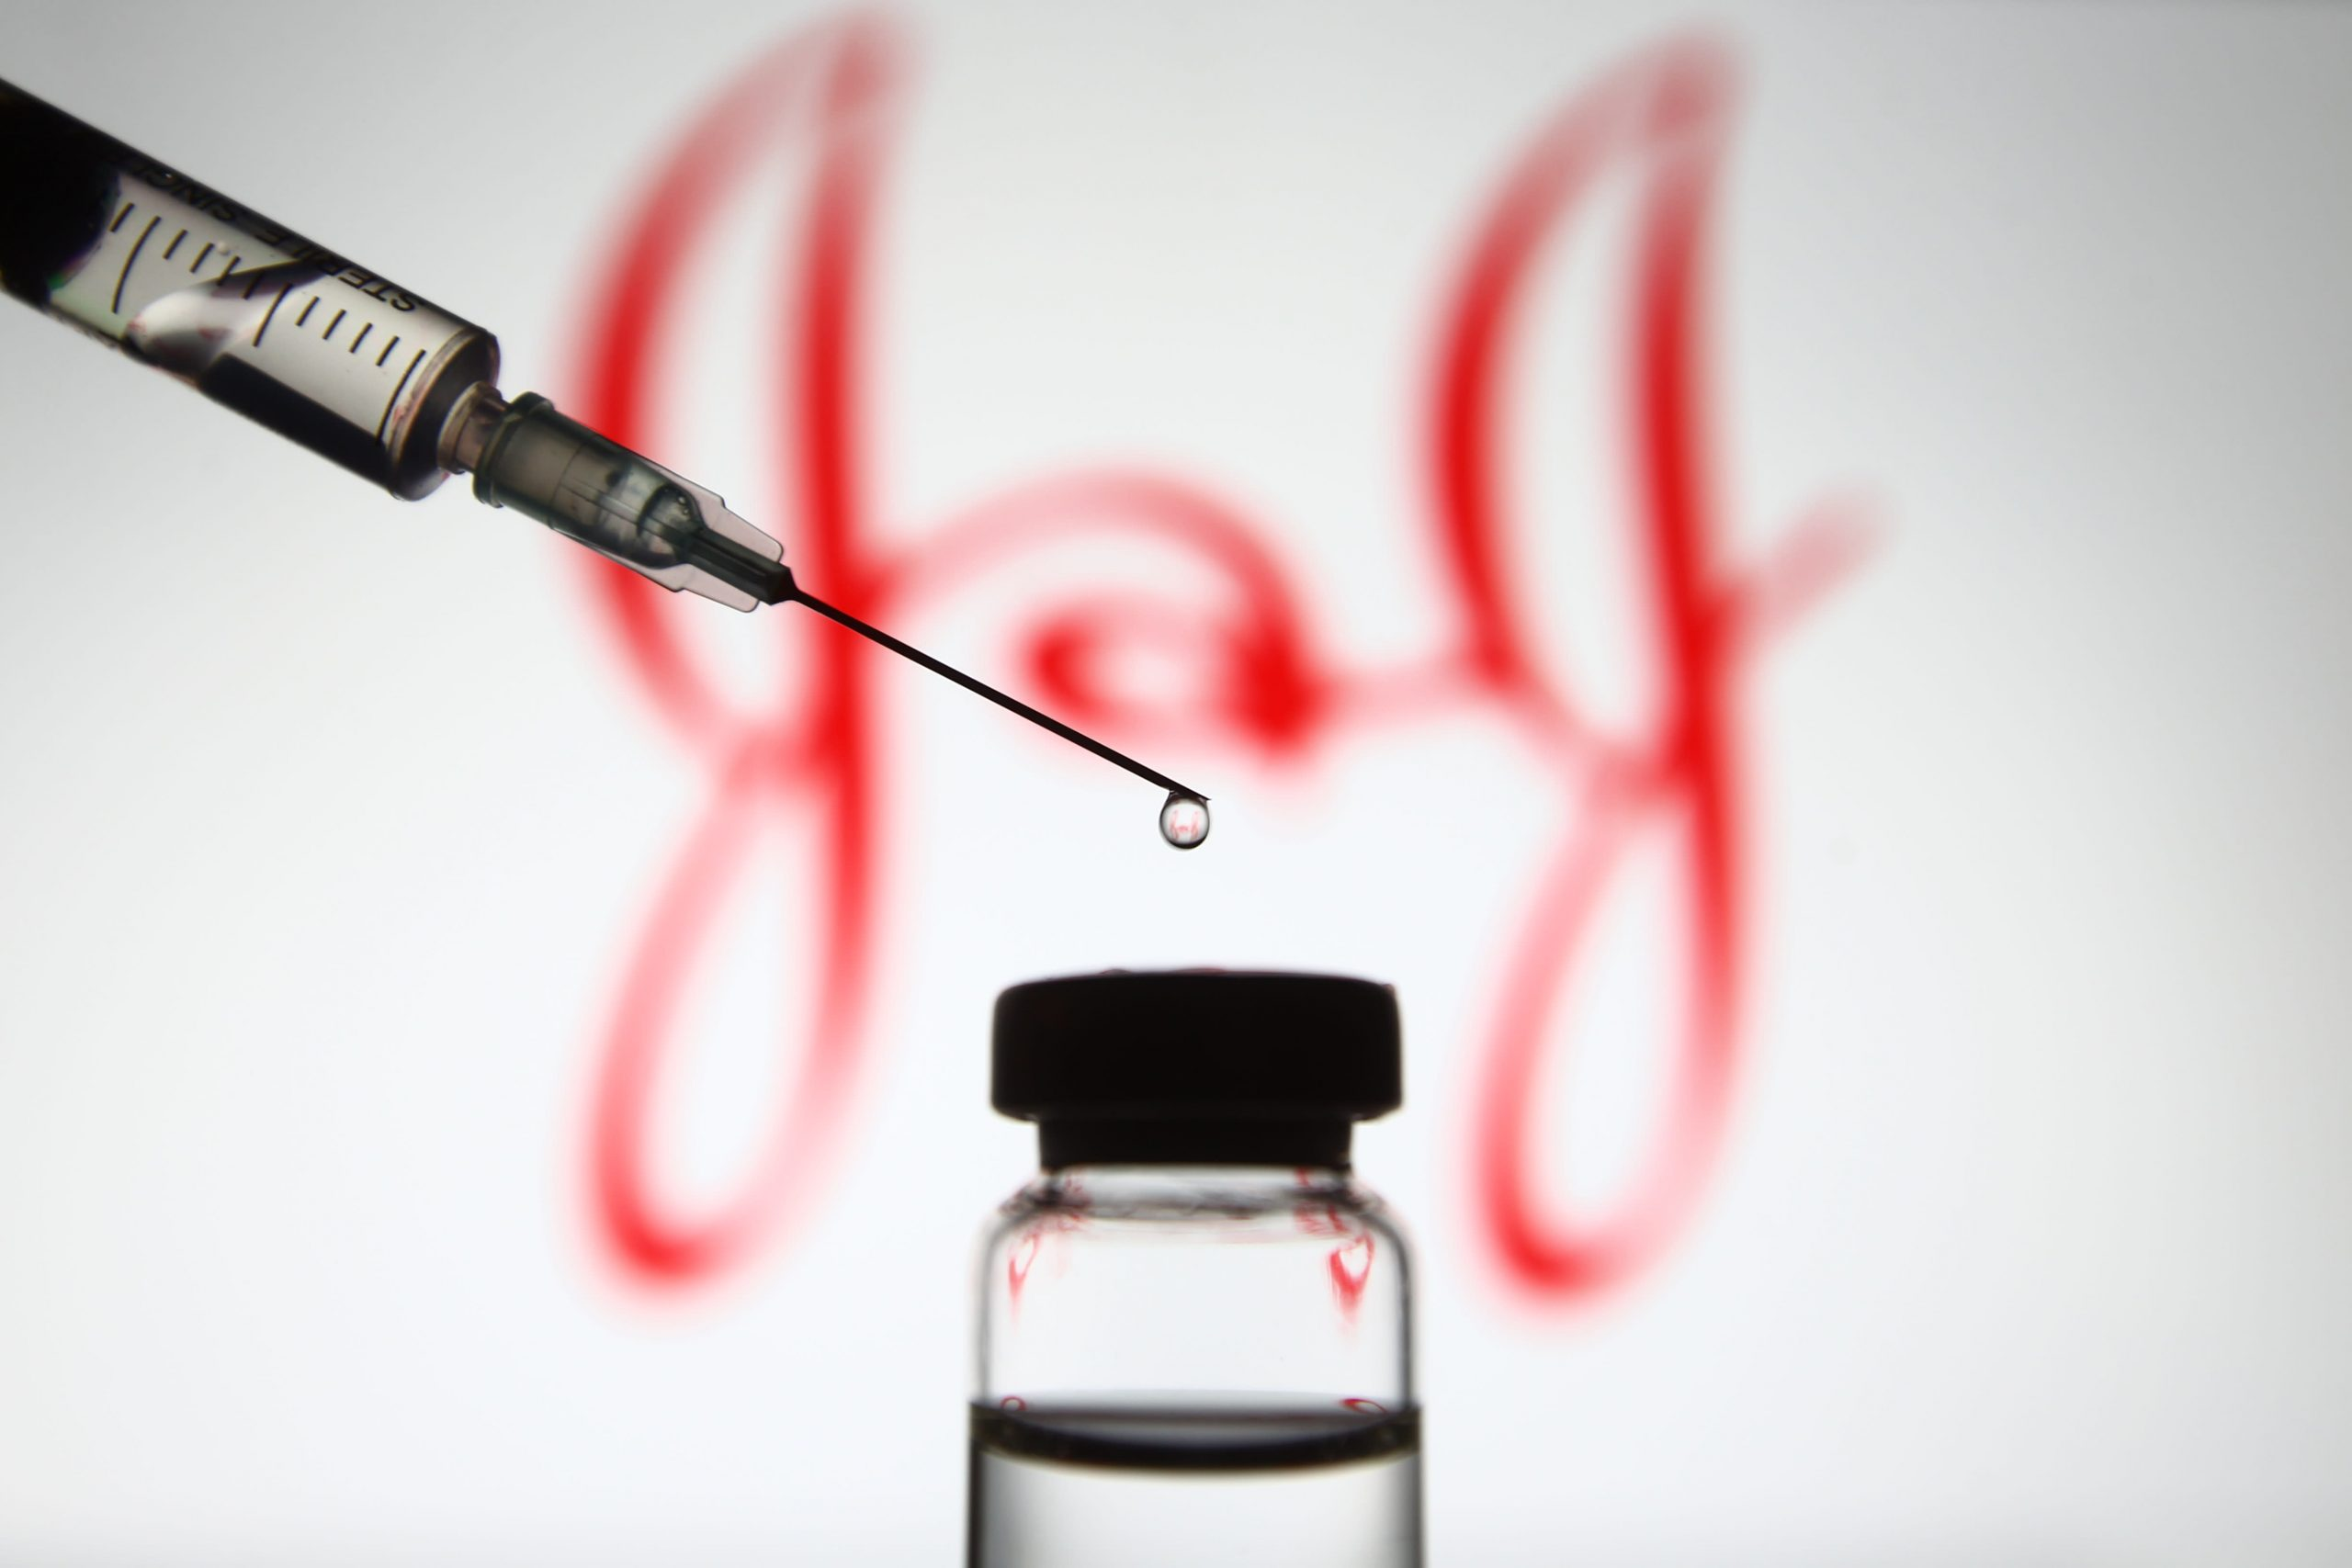 J&J board member says 20 million Covid vaccine doses will be delivered by the end of March